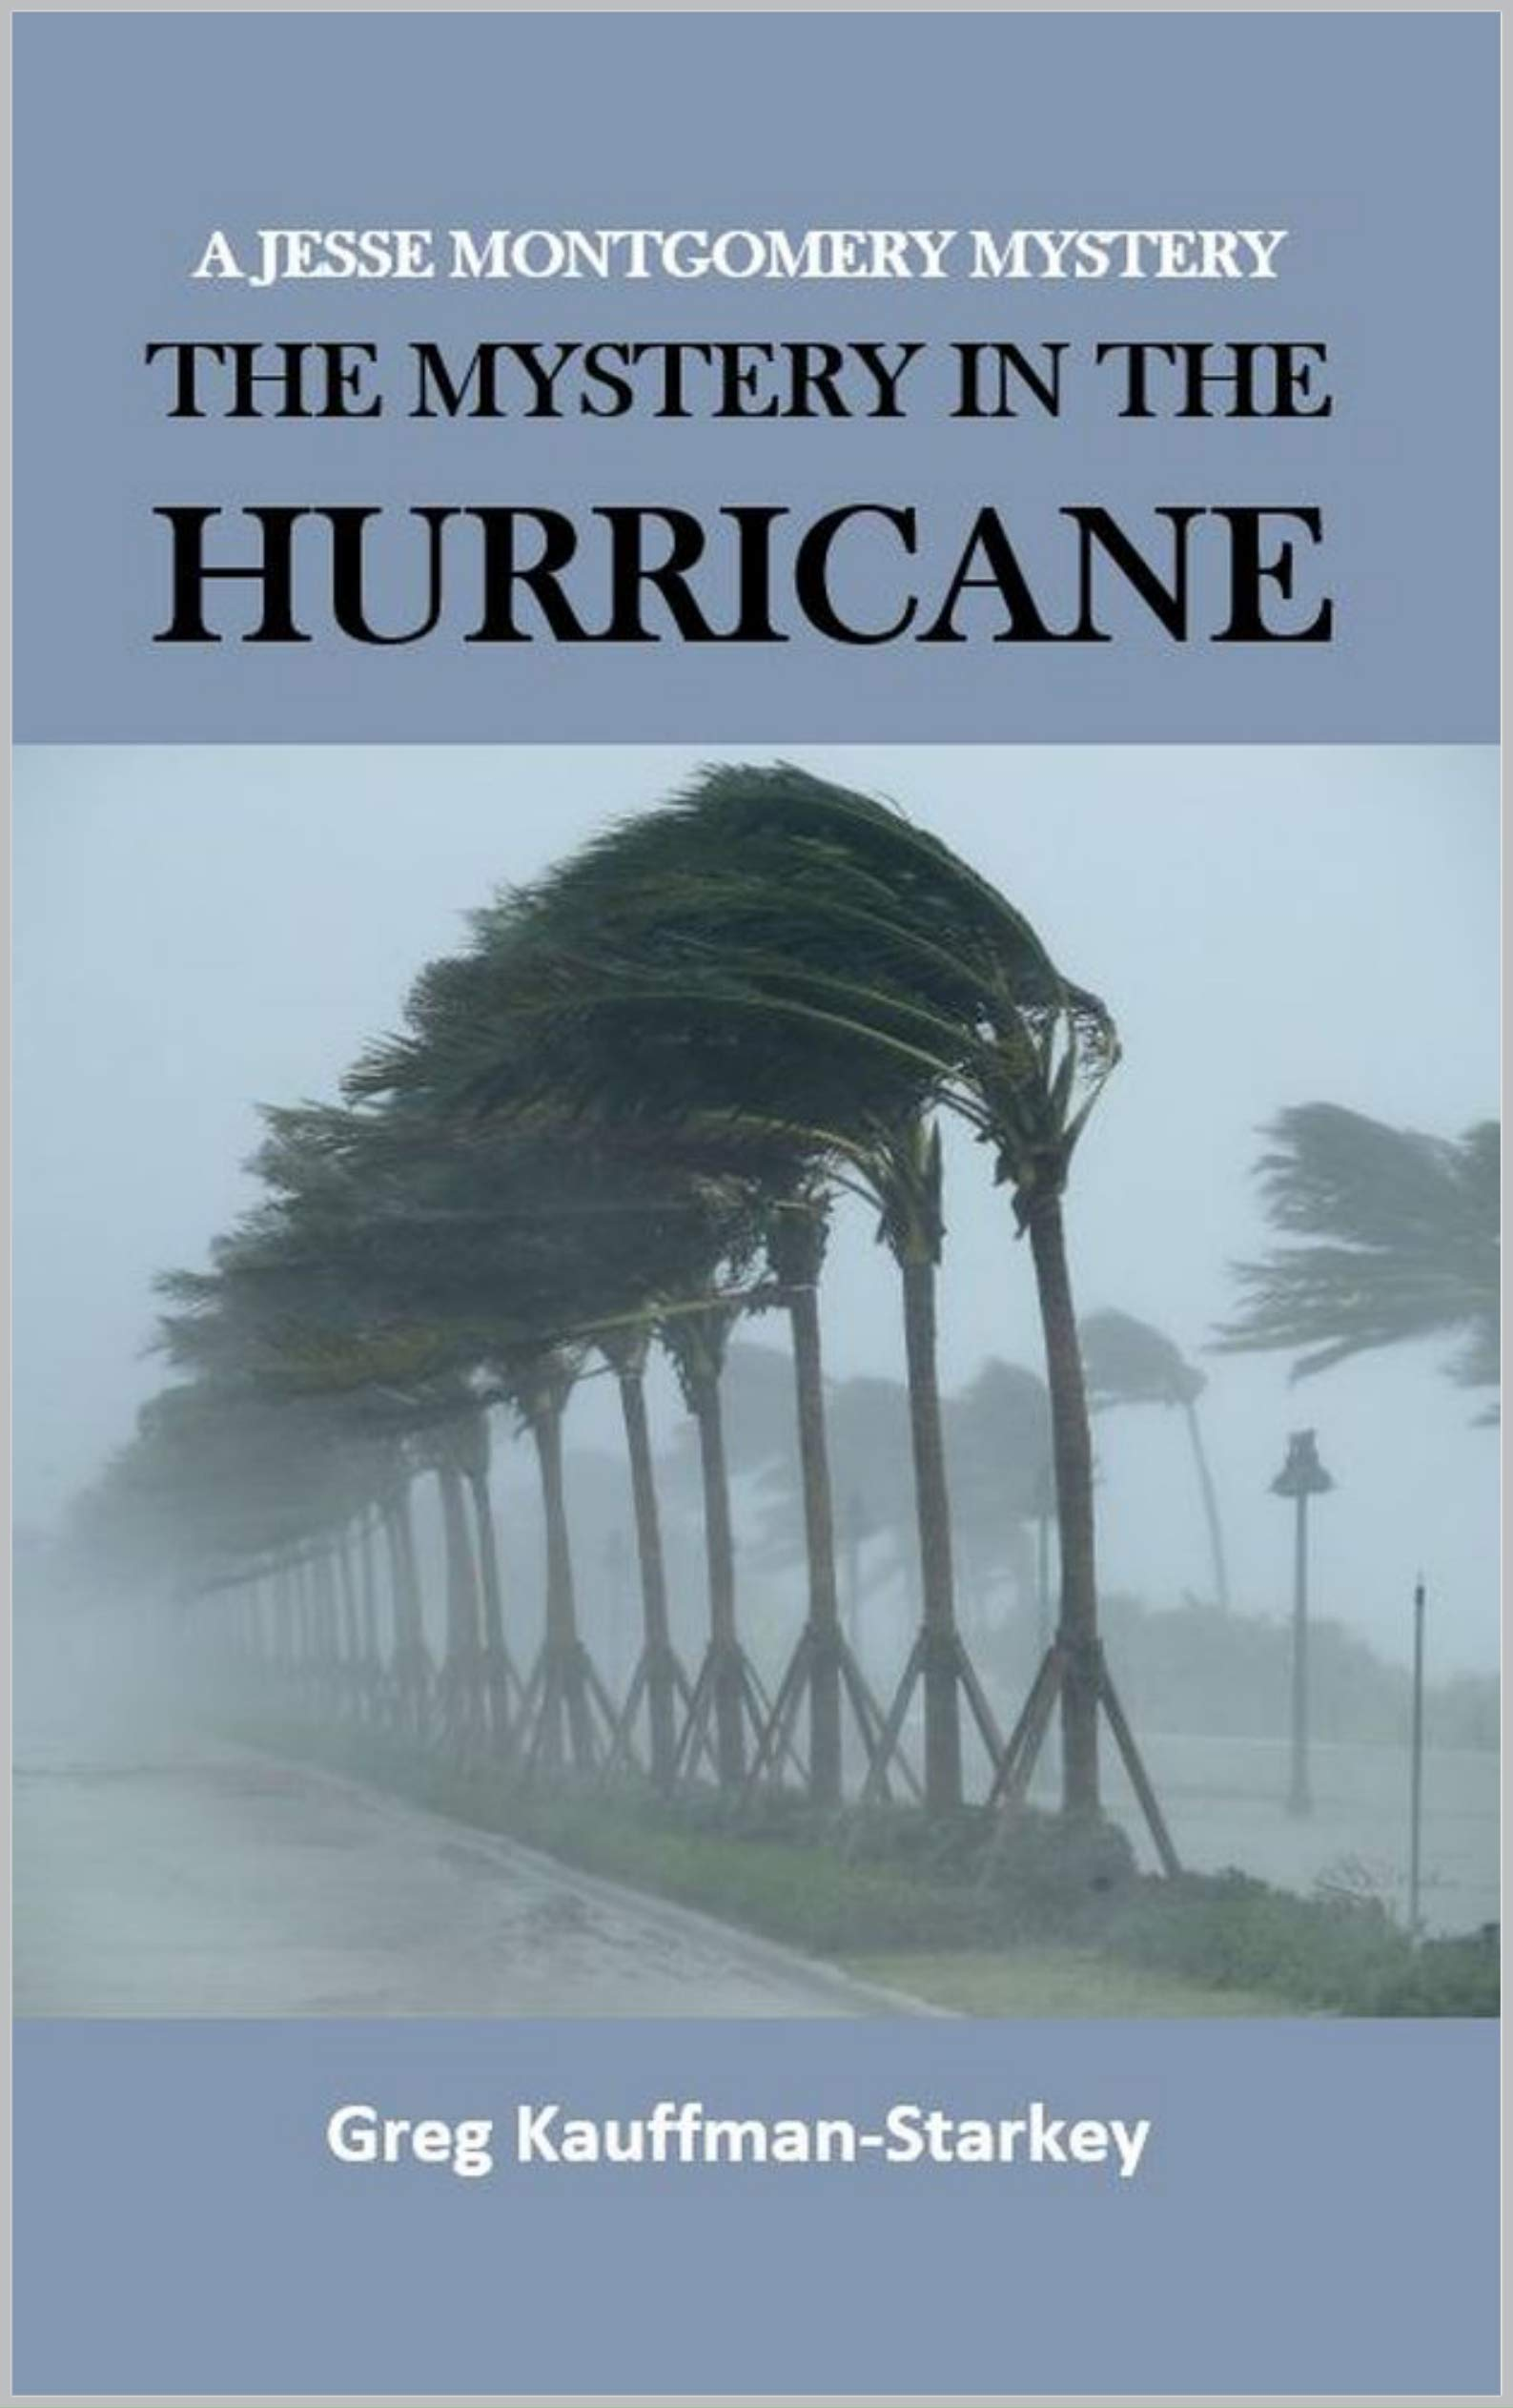 Mystery in the Hurricane (A Jesse Montgomery Mystery #0.5)